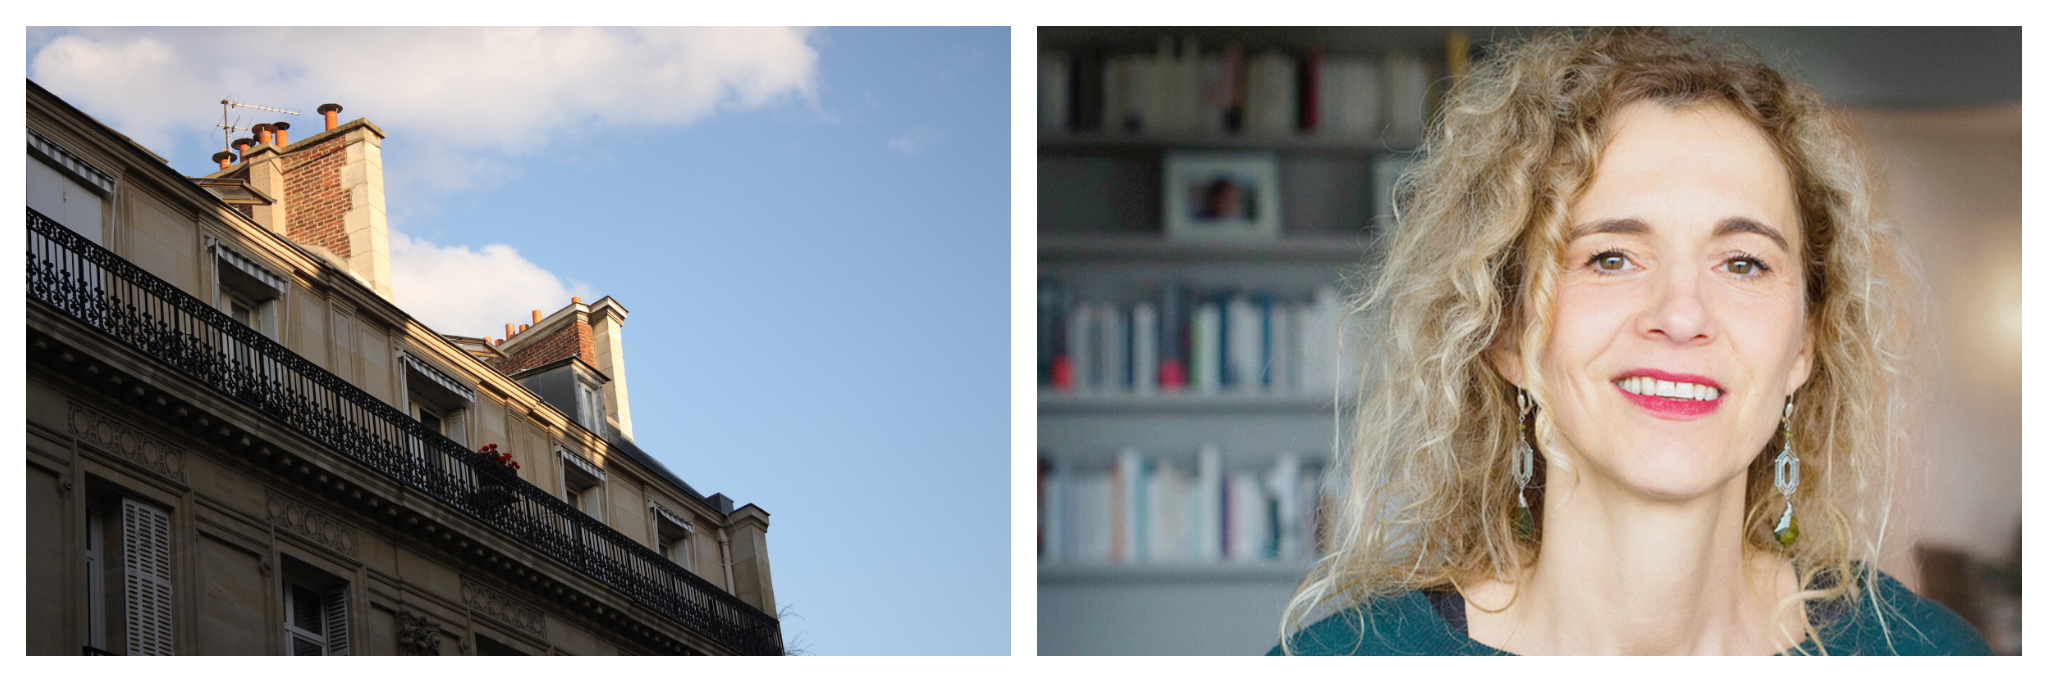 Left: The top of an apartment building in Paris as the sun sets on the roof, blue sky and cloud are visible in the background, Right: A portrait of Delphine de Vigan, wearing a blue shirt and standing in front of a wall of books